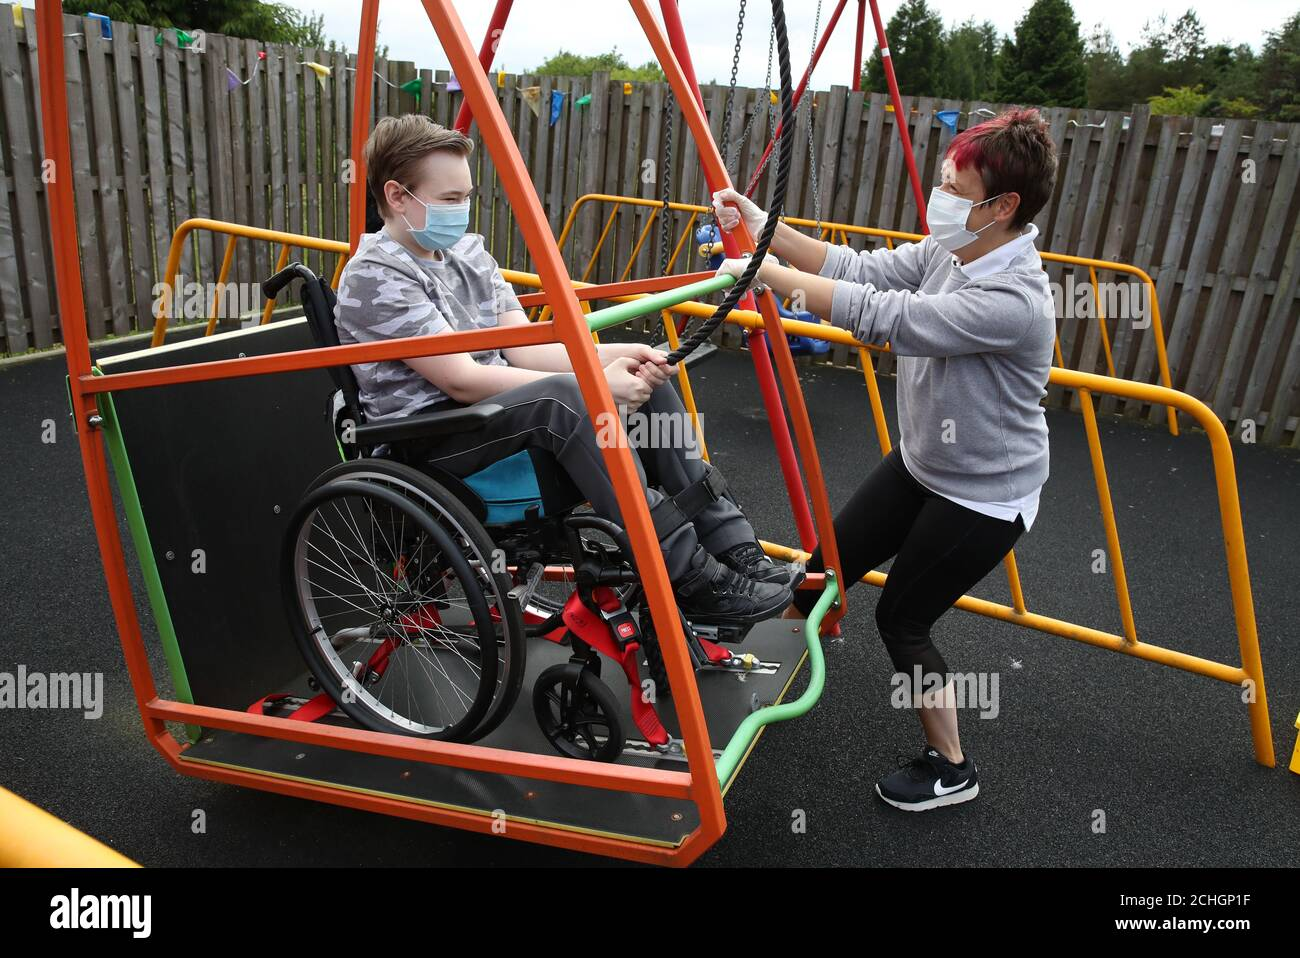 Embargoed to 0001 Monday June 22 Gregor Marshall alongside Early Years Practitioner Catherine Anderson as Gregor has a ride on the wheelchair swing in the outside therapy area at the Craighalbert Centre. Coronavirus adaptations have been installed at the Scottish Centre for Children with Motor Impairments, Craighalbert Centre, Cumbernauld, as Scotland continues gradually lifting coronavirus lockdown measures. Stock Photo